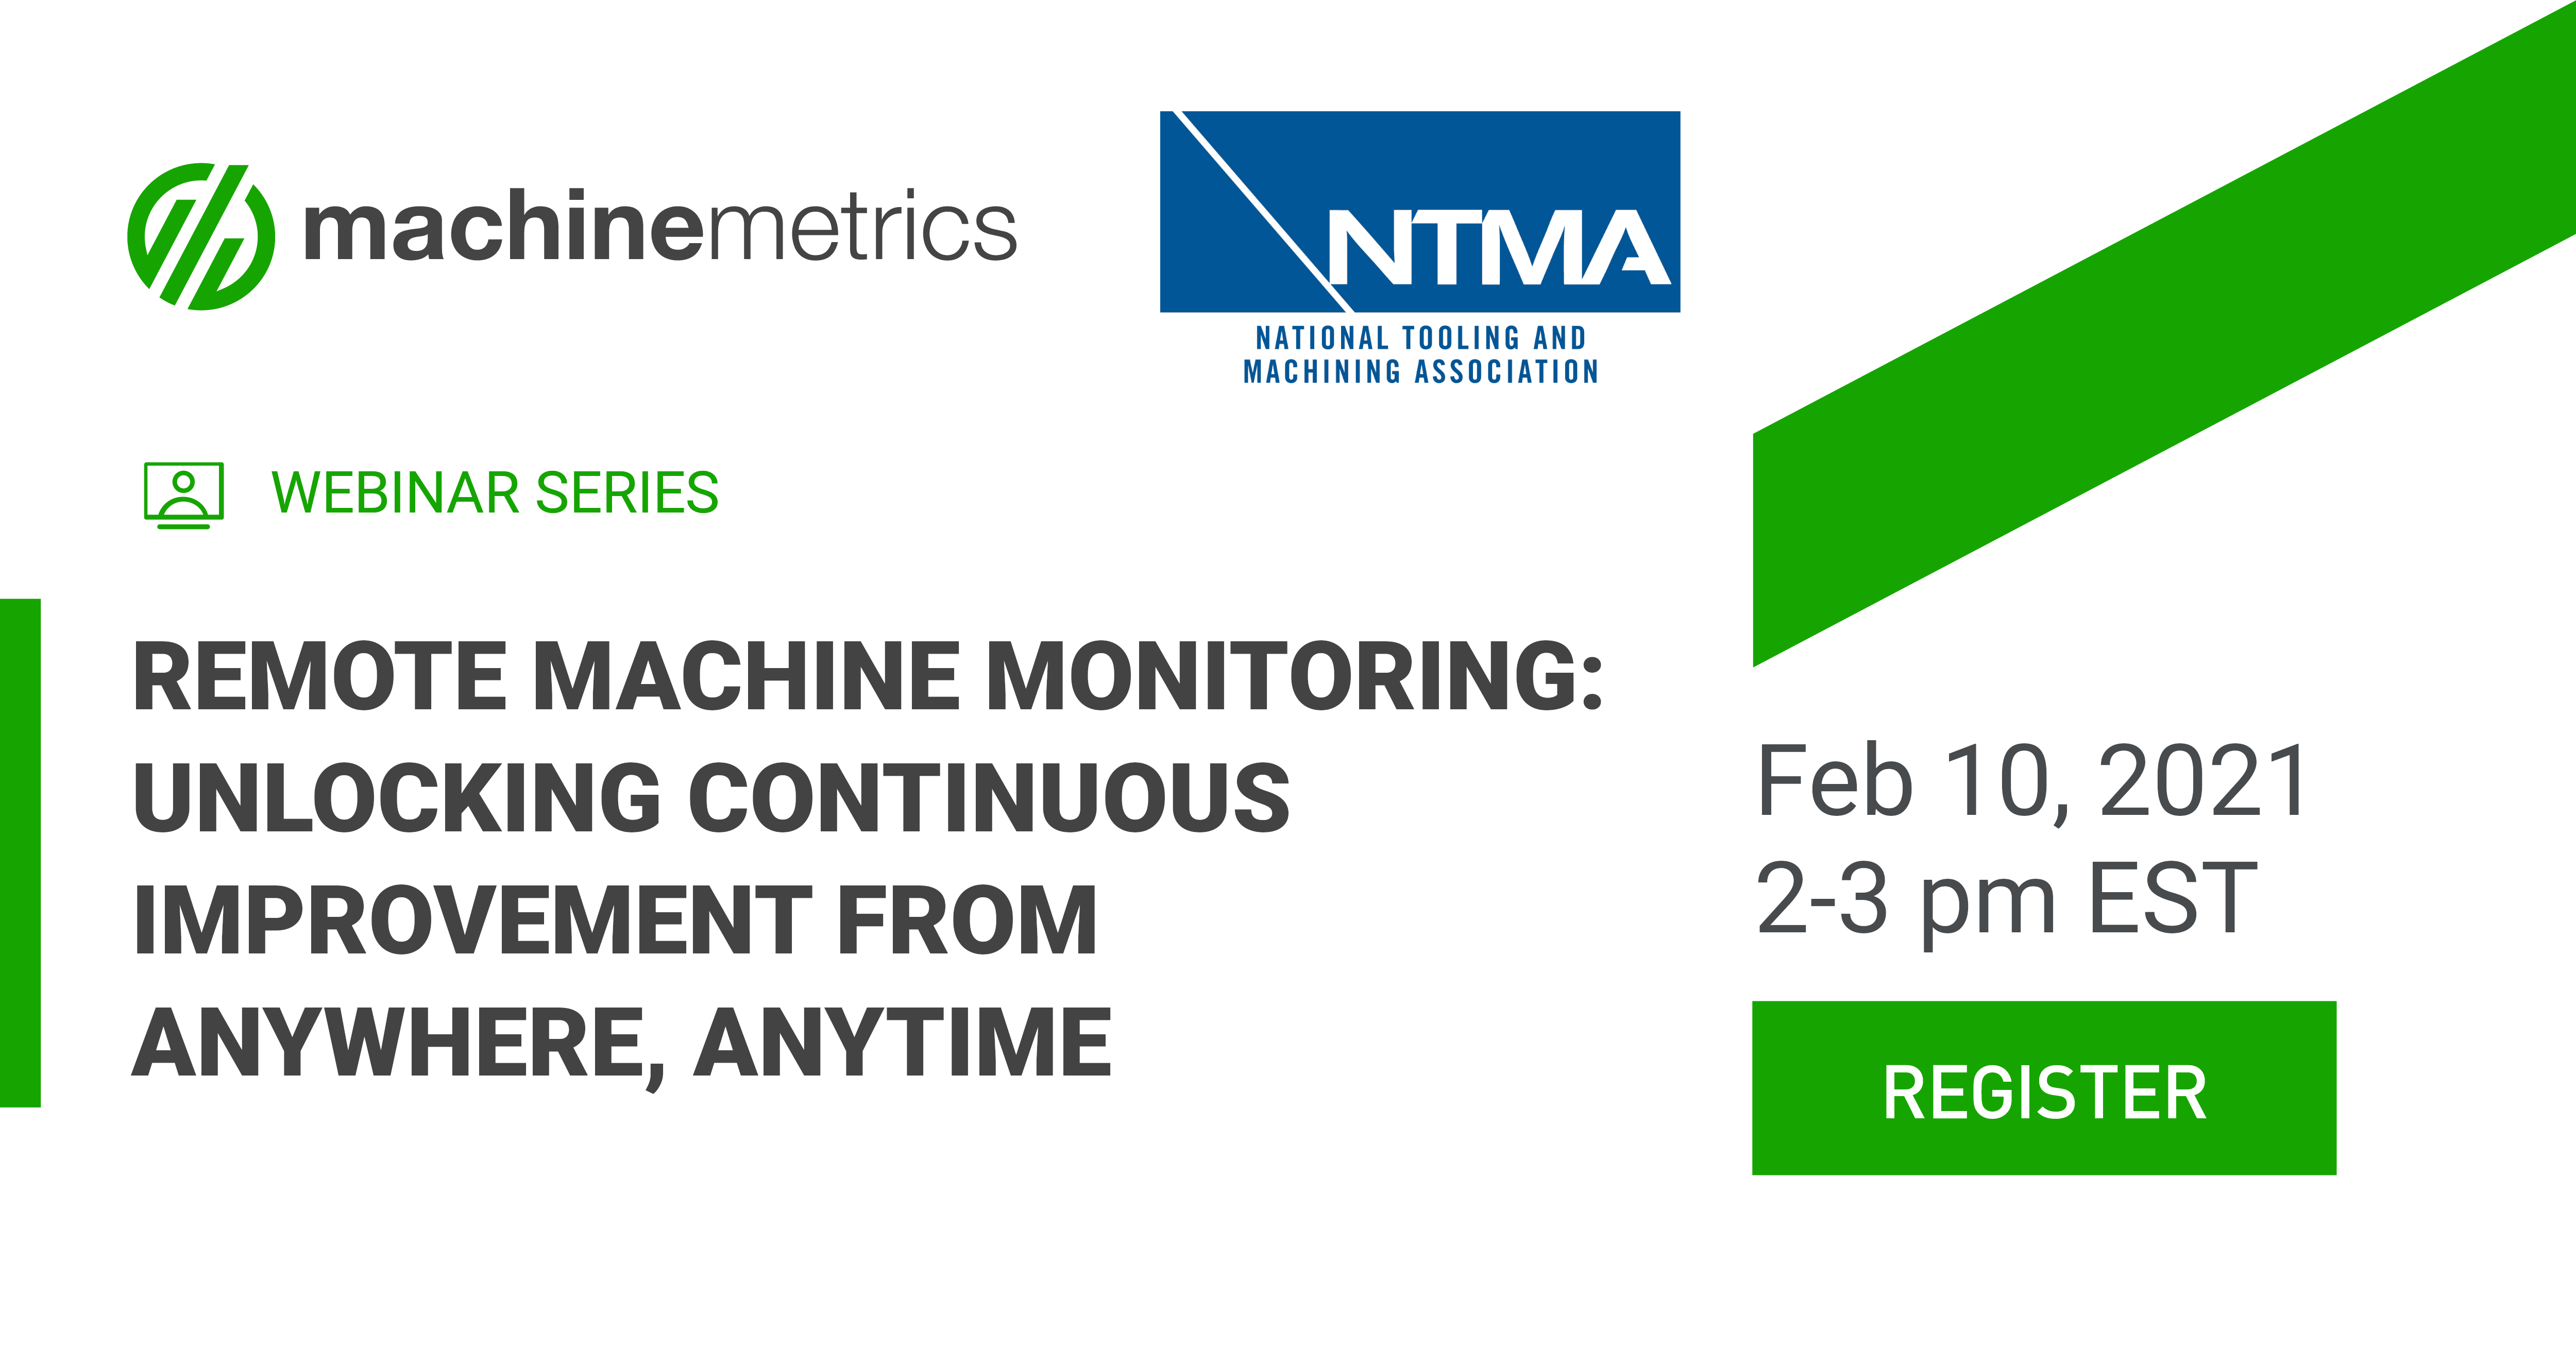 Remote Machine Monitoring: Unlocking Continuous Improvement From Anywhere, Anytime